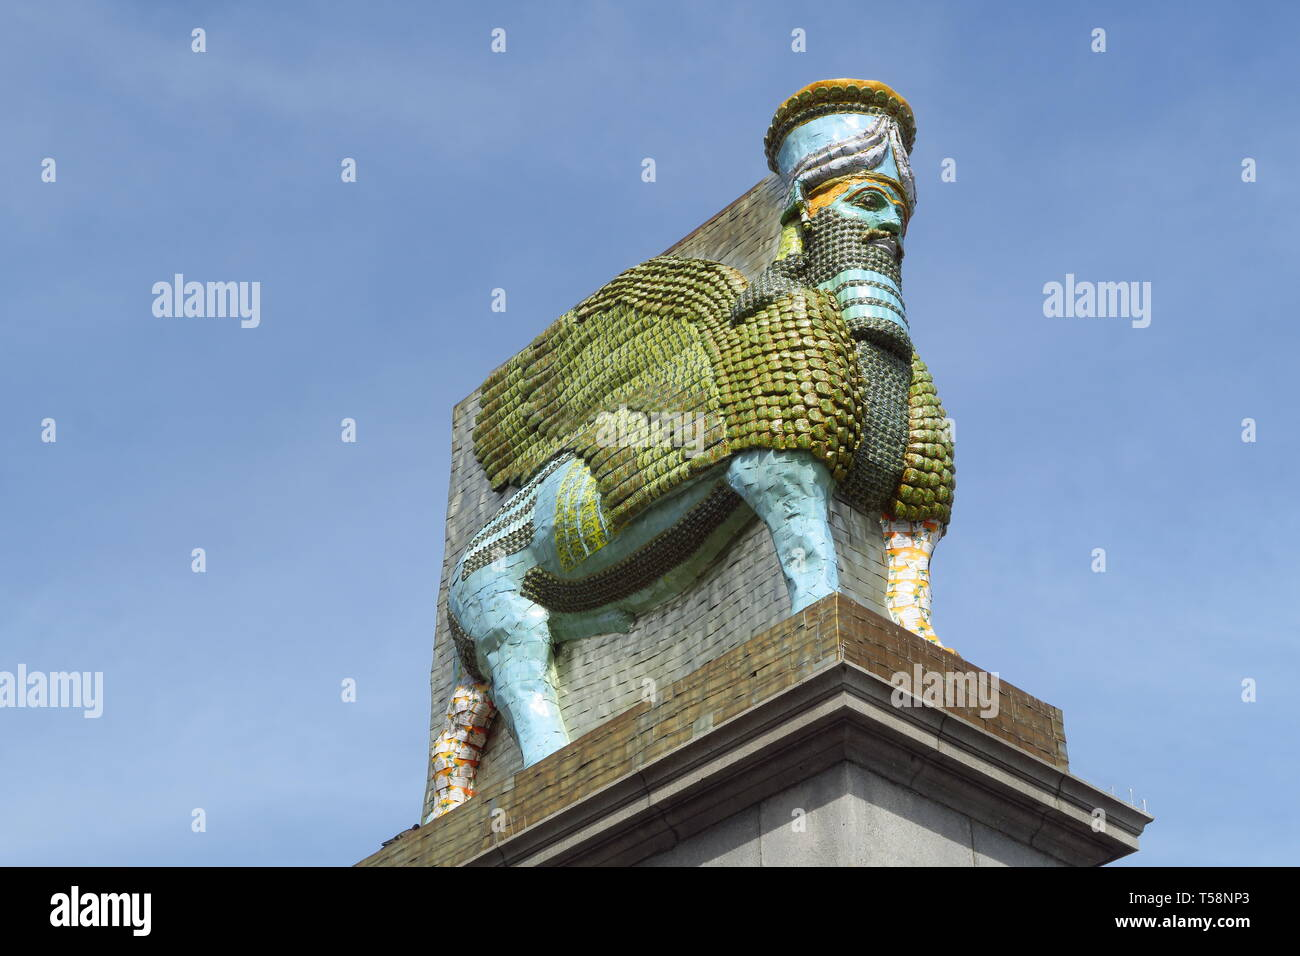 Lamassu installation made out of old date cans currently stands as the fourth plinth statue in London's Trafalgar Square Stock Photo